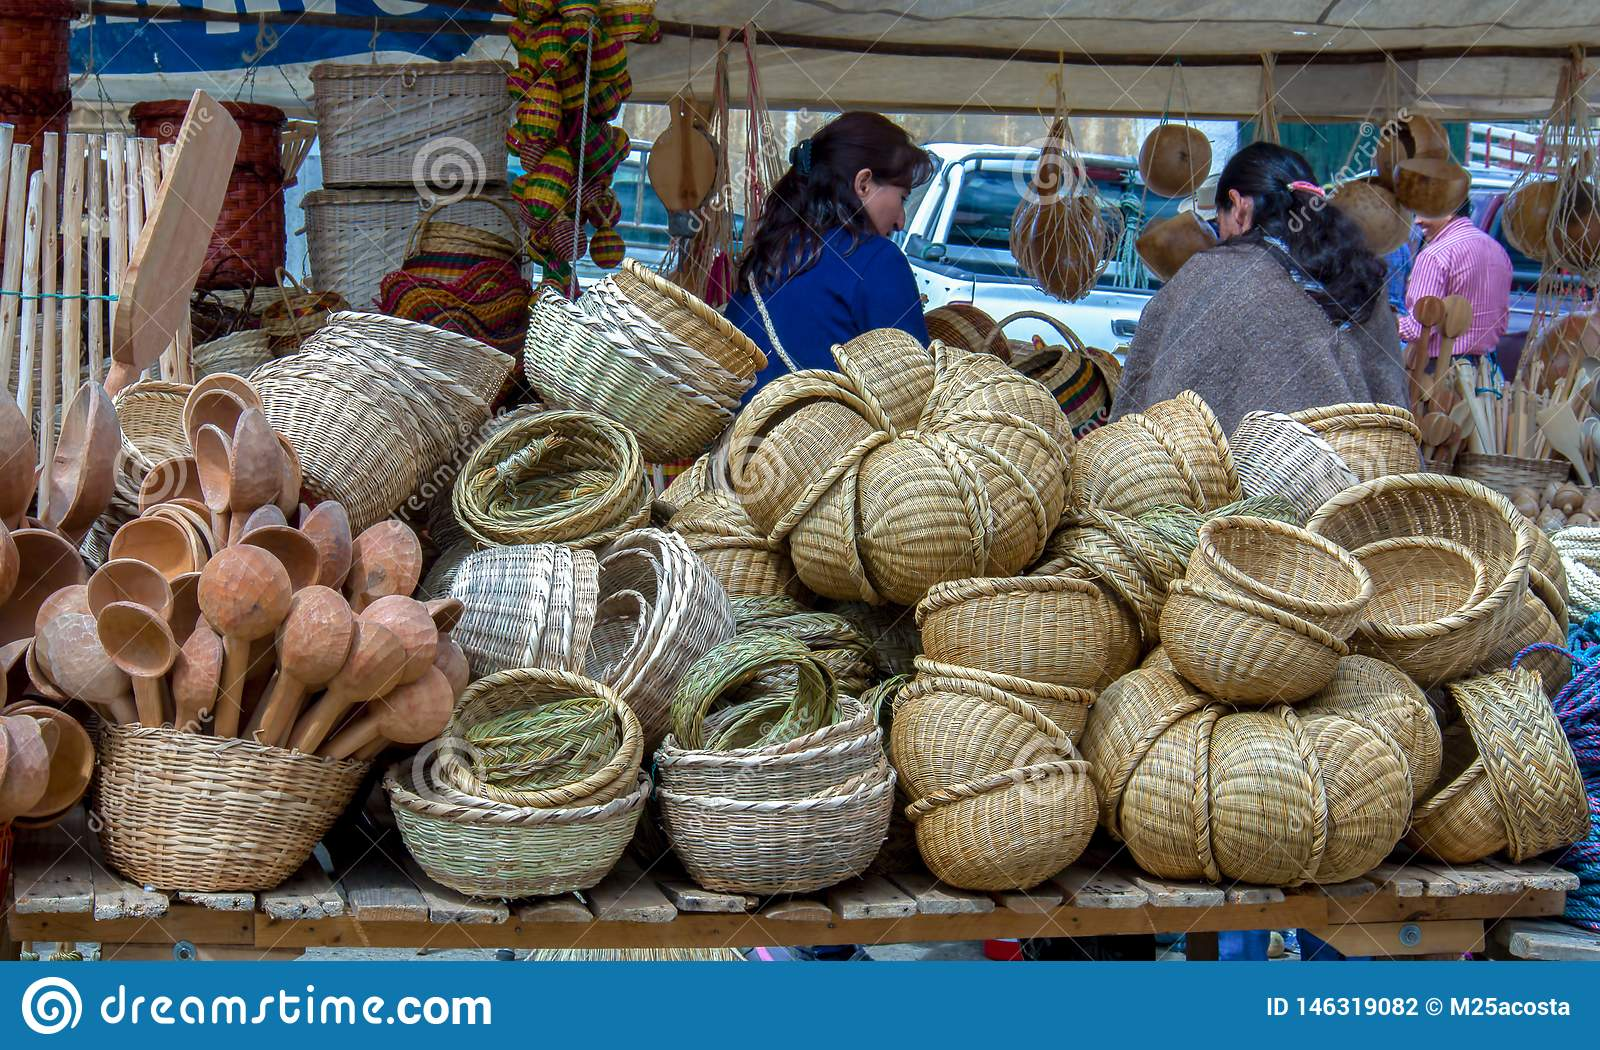 Stand of handcrafted baskets at a market